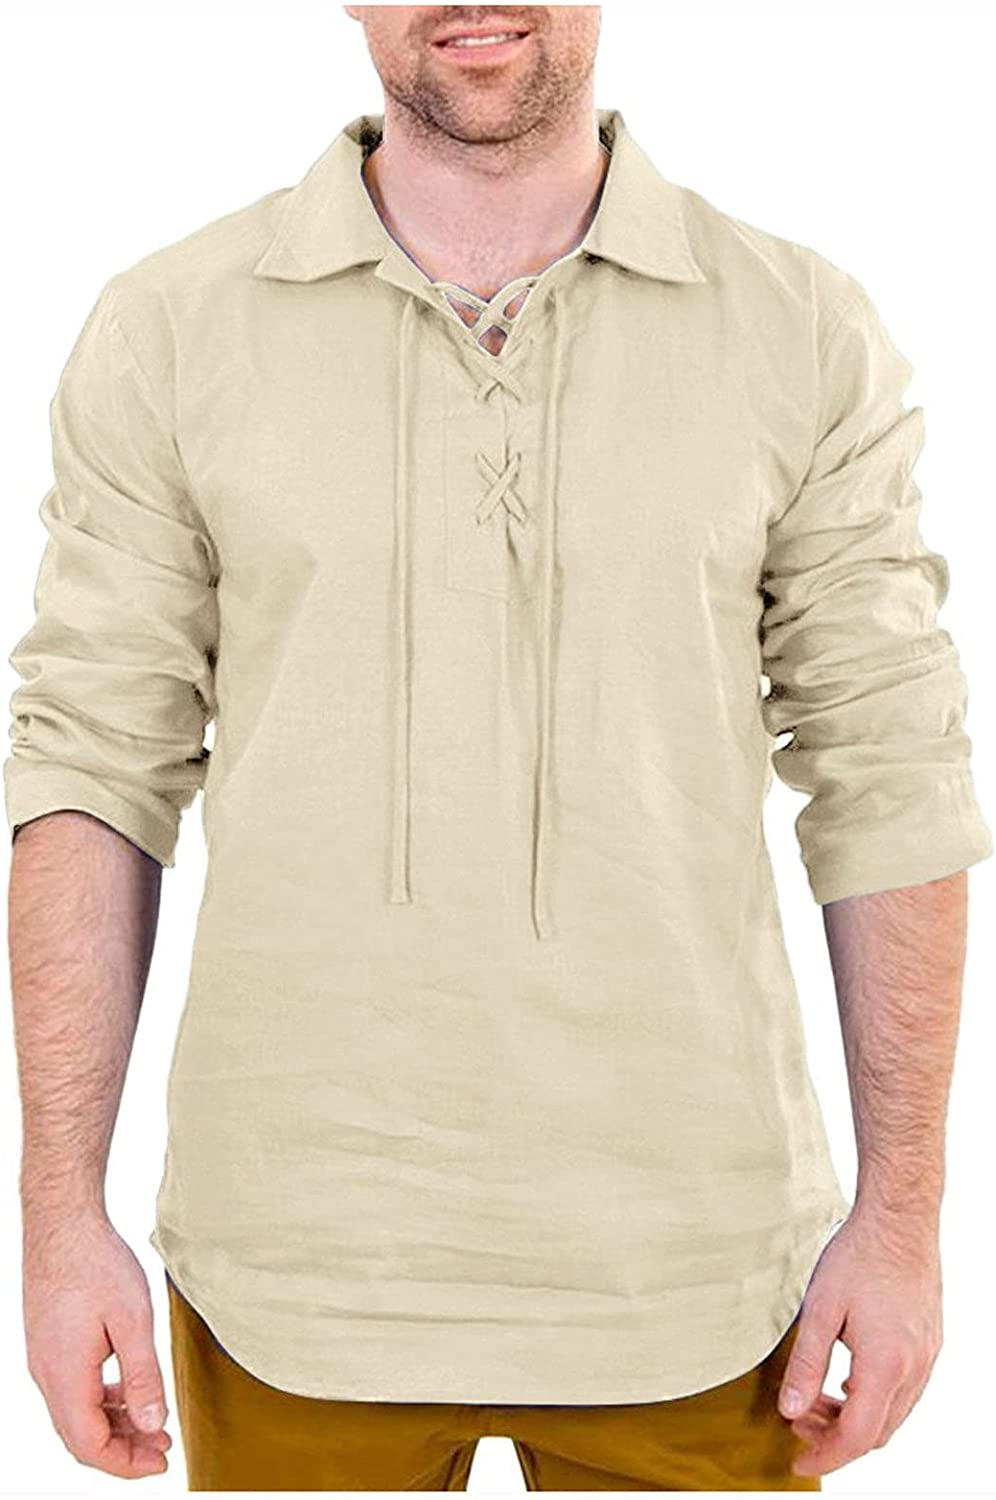 WOCACHI Henley Shirts for Mens, Lace-up Turn-down Collar Solid Casual Shirt Long Sleeve Drawstring Comfy Tee Tops